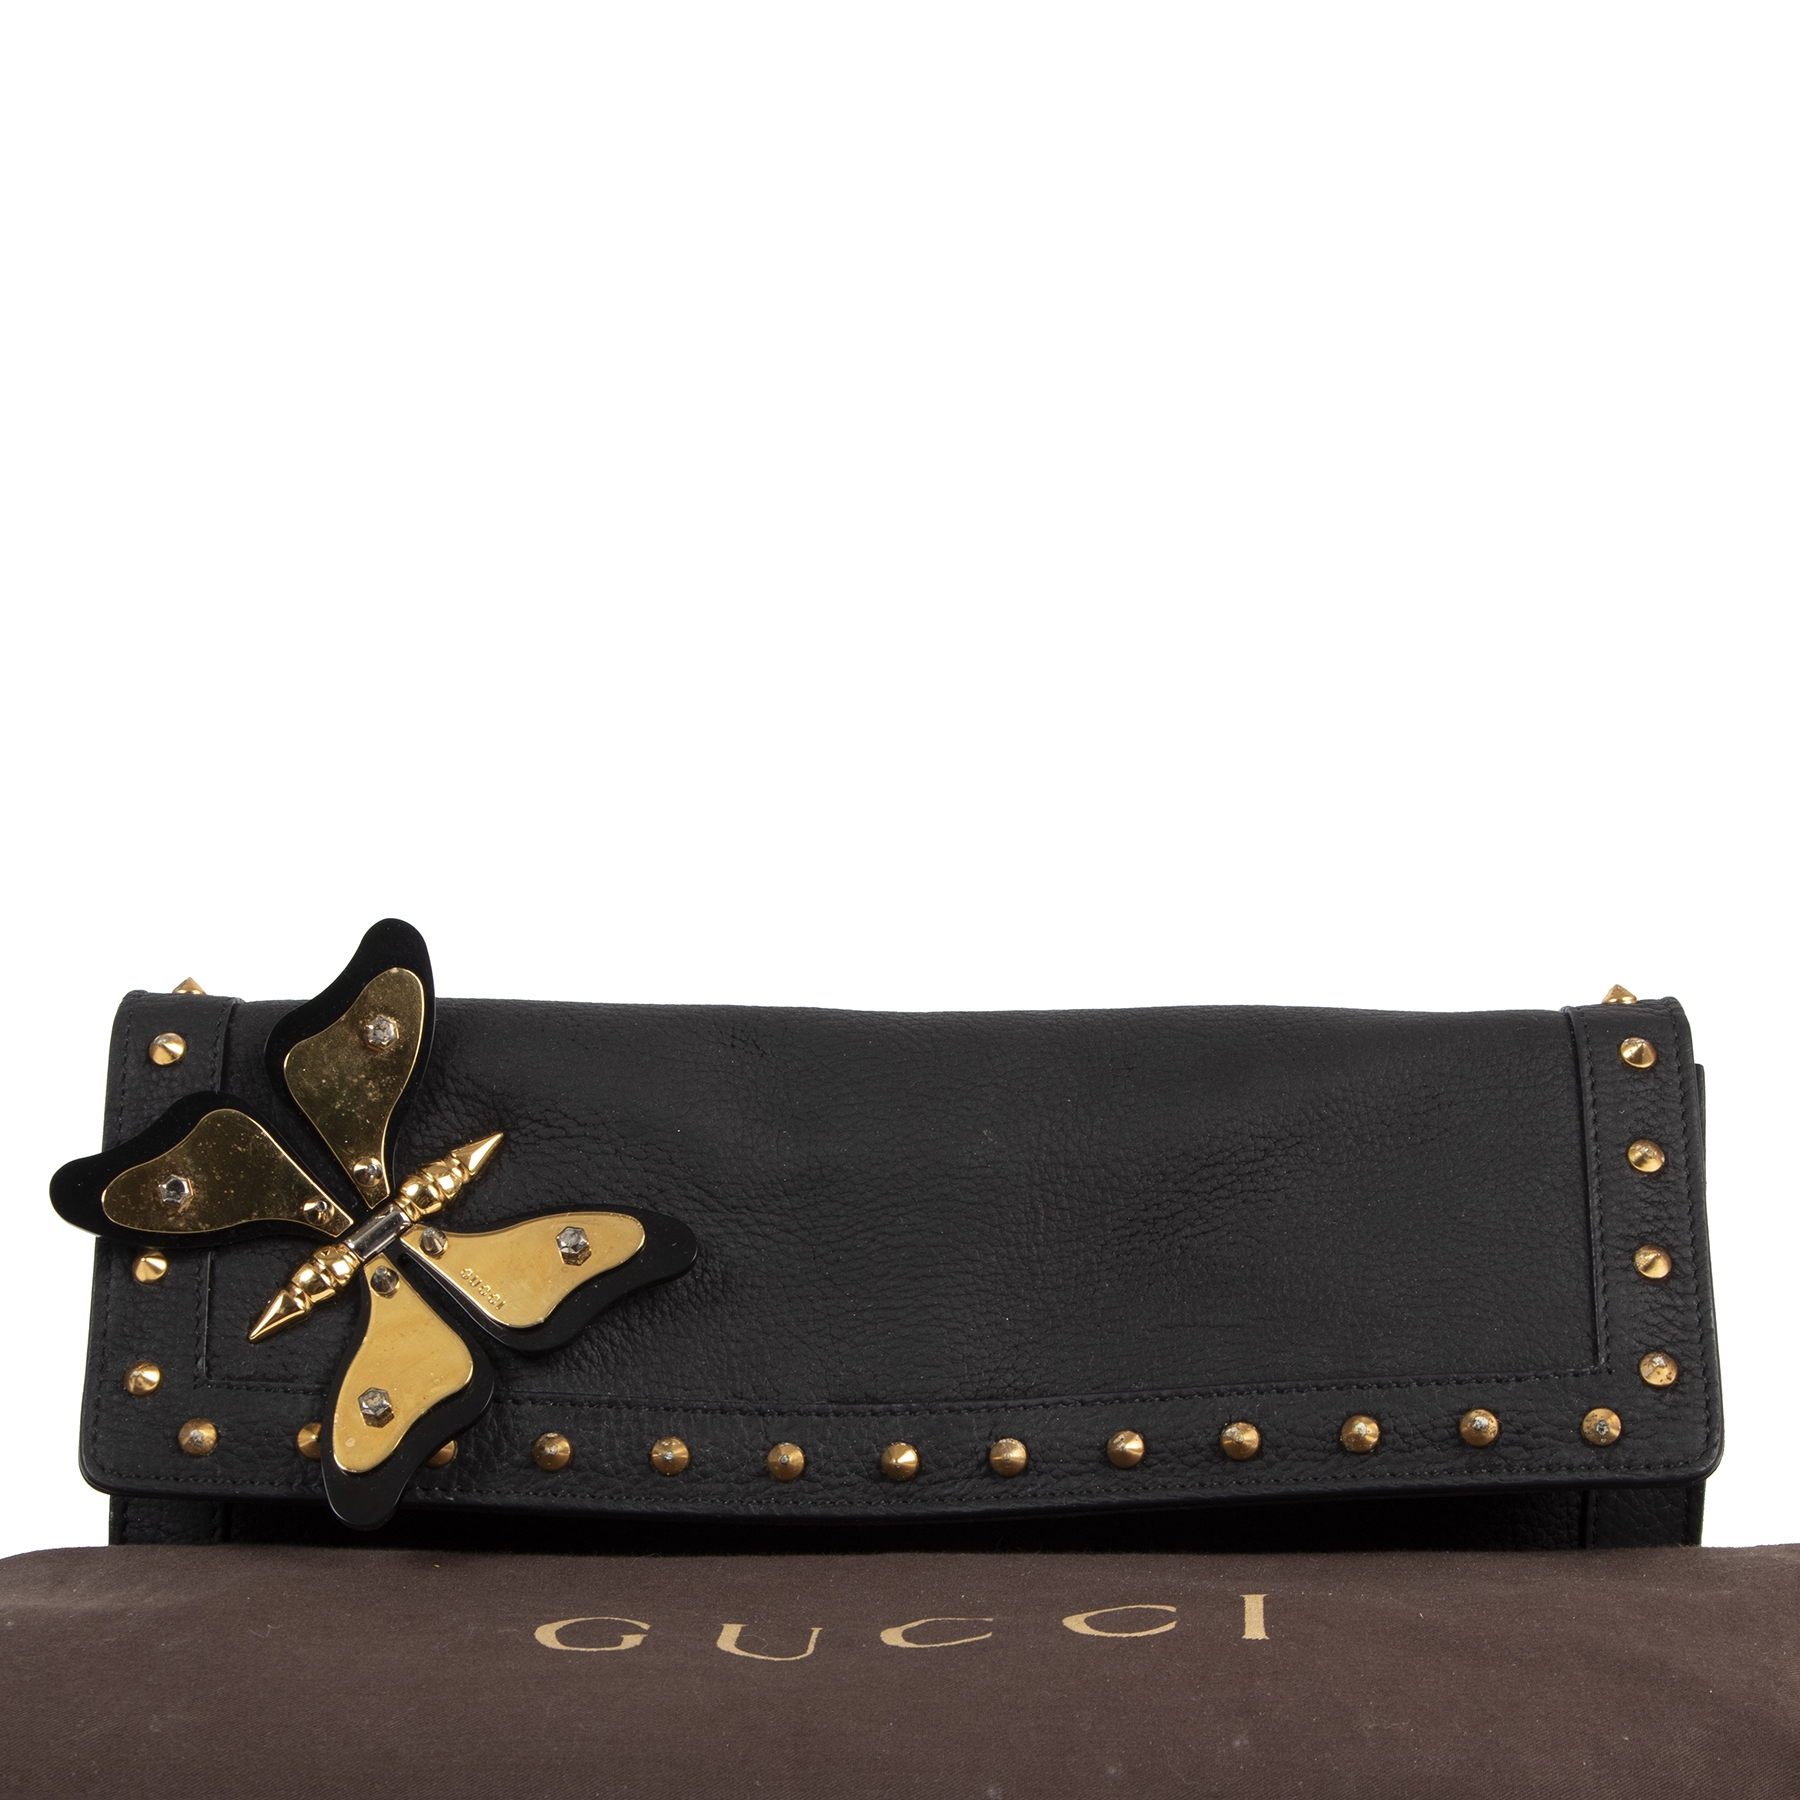 Authentique seconde-main vintage Gucci Black Leather Broadway Butterfly Clutch achète en ligne webshop LabelLOV Belgique